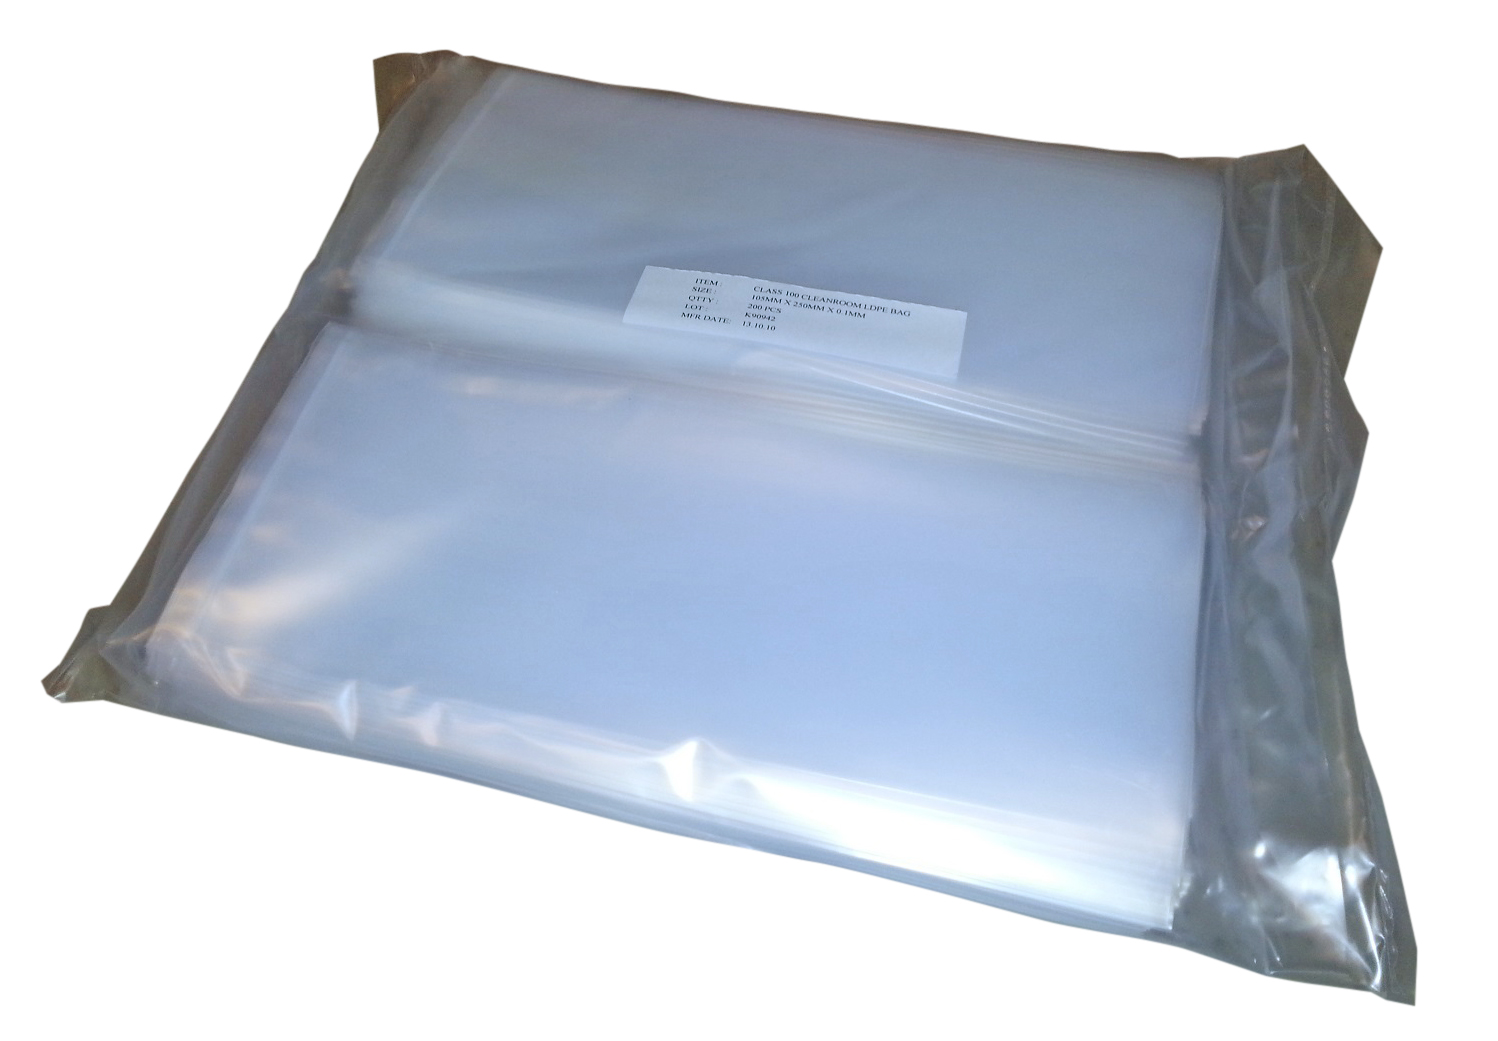 LDPE, size 105mm x 250mm x 0,1mm